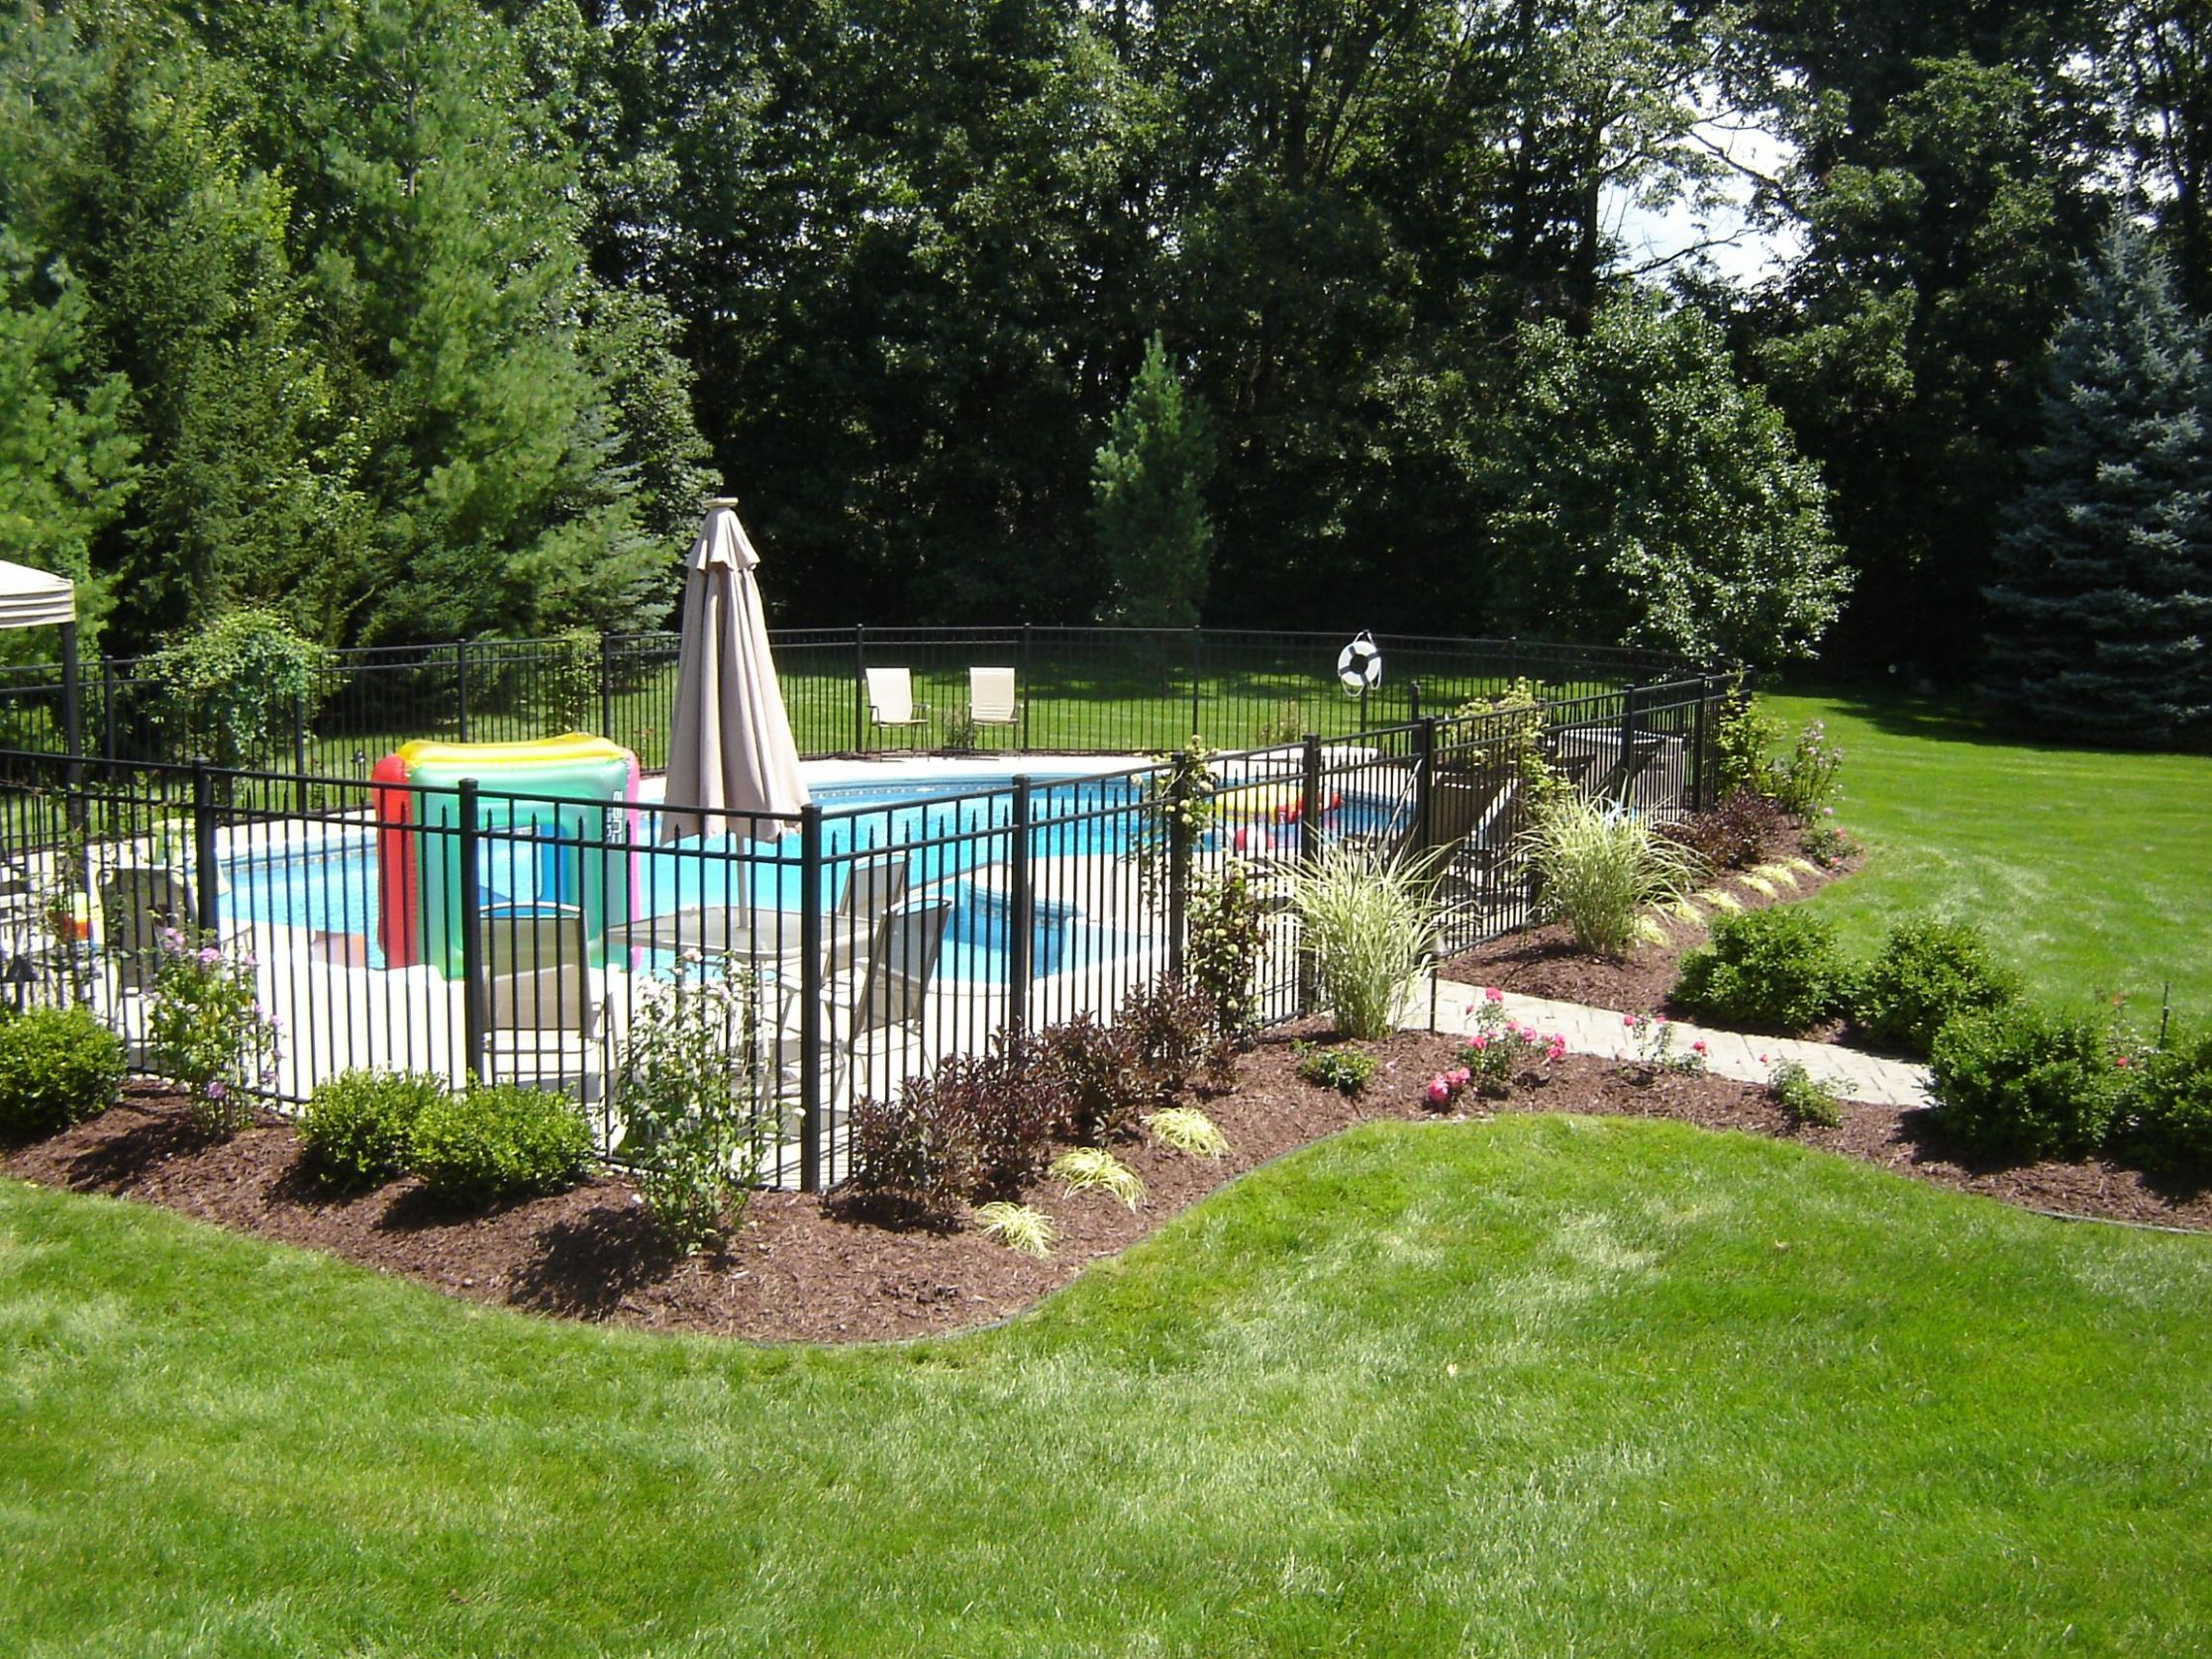 Landscaping Ideas Around Pool Fence ~ Home Landscaping Ideas - pool landscaping ideas